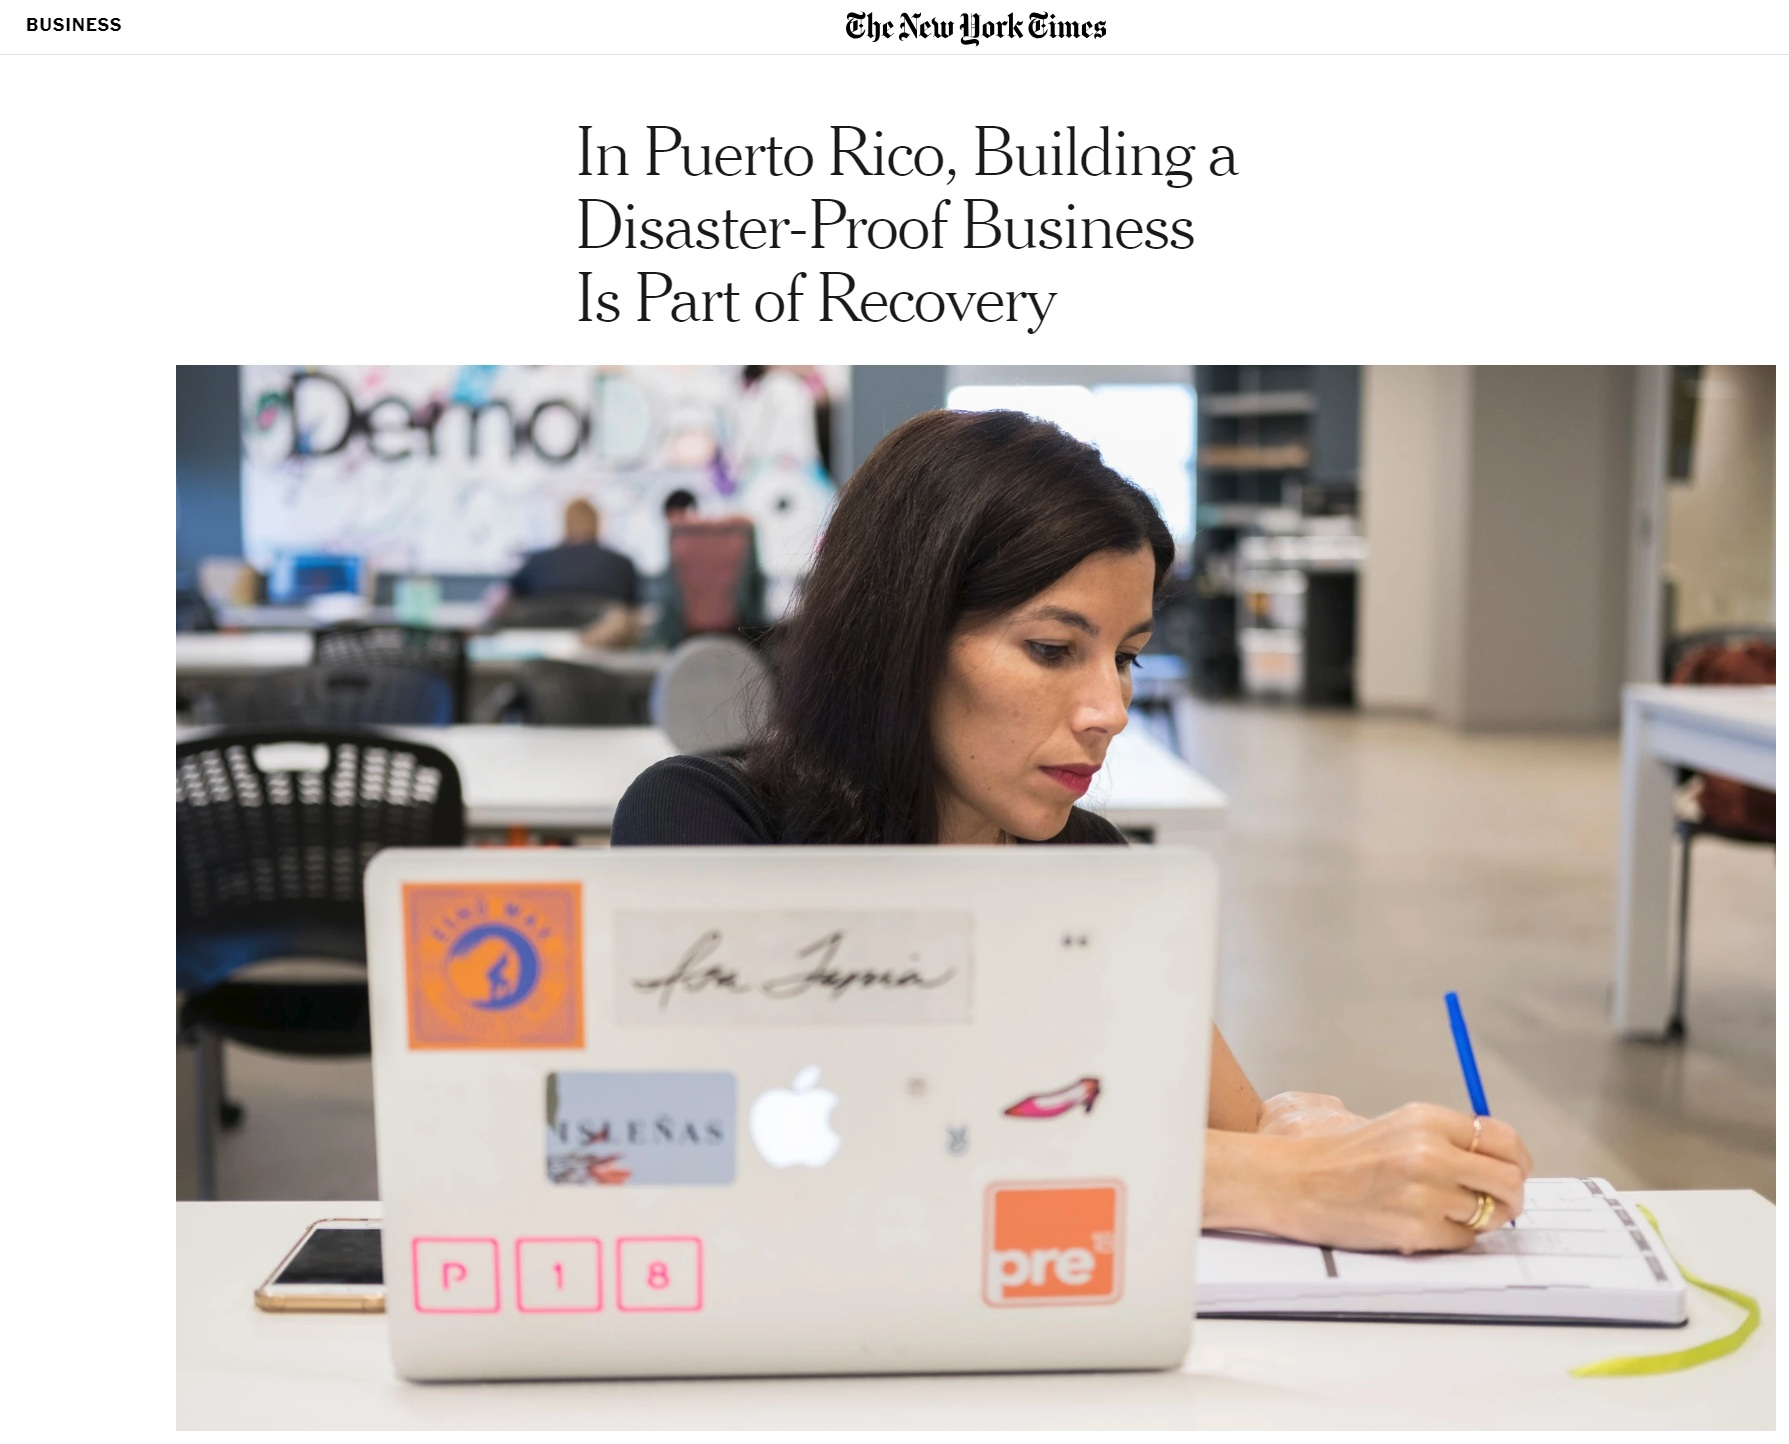 In Puerto Rico, Building a Disaster-Proof Business Is Part of Recovery